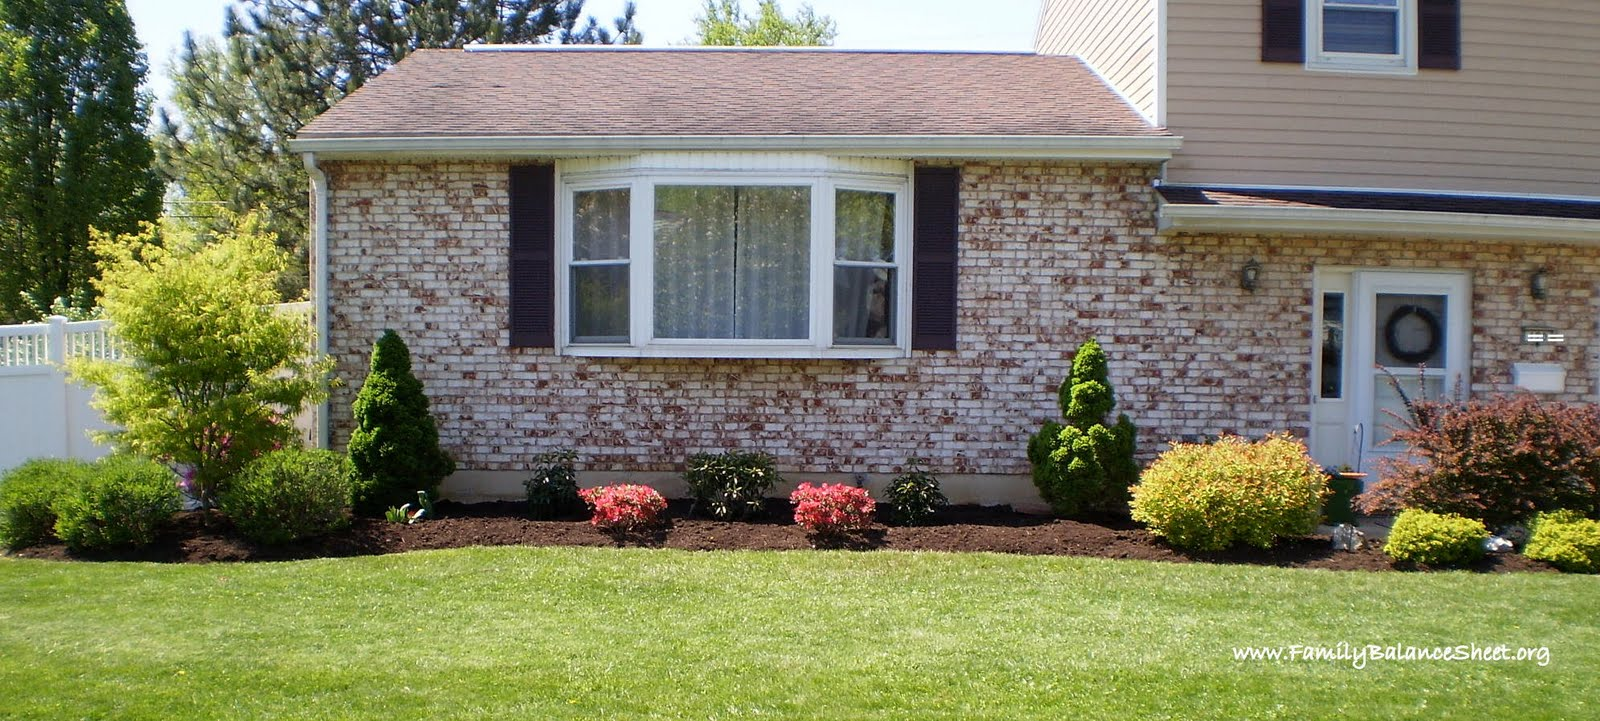 15 tips to help you design your front yard save money too for Front yard garden design plans